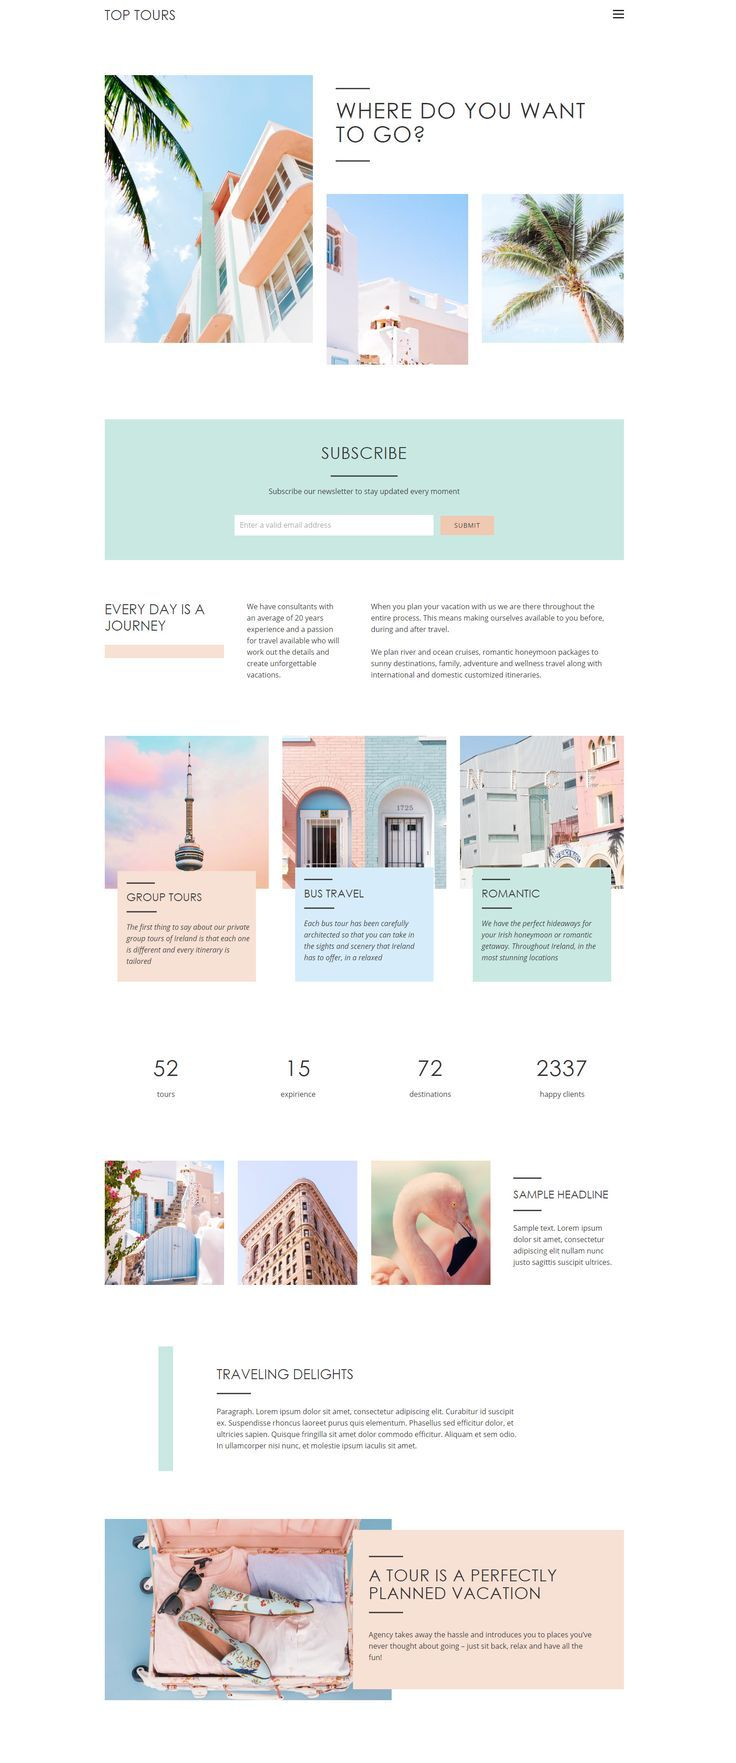 Nicepage is a new powerful Web Design tool and an easyto